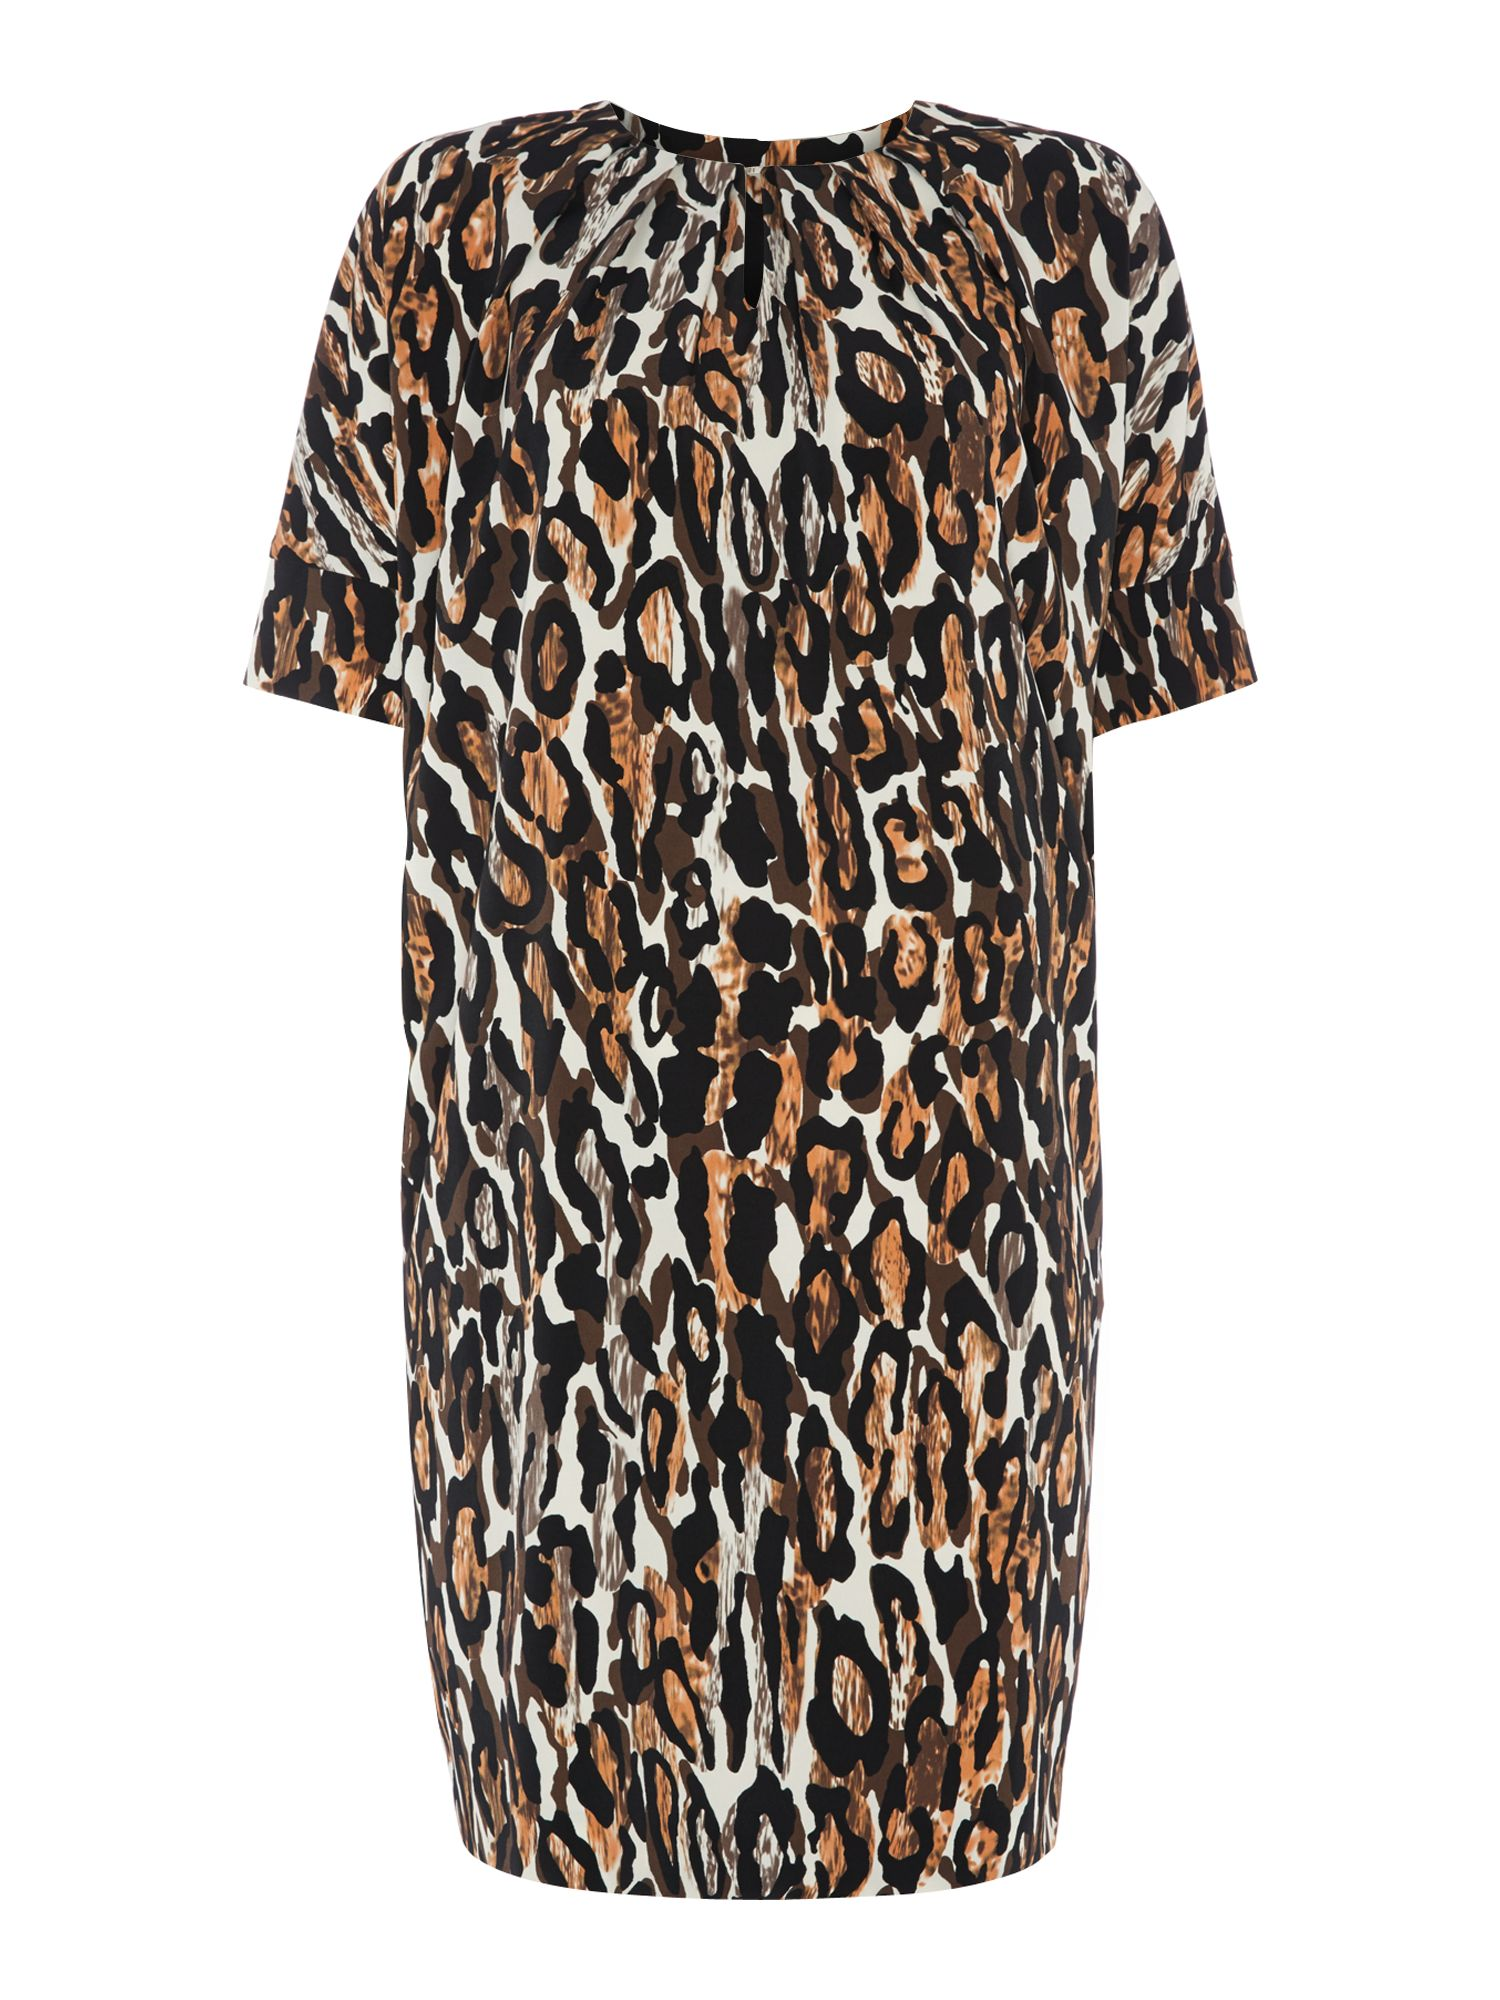 Leopard tuck front dress